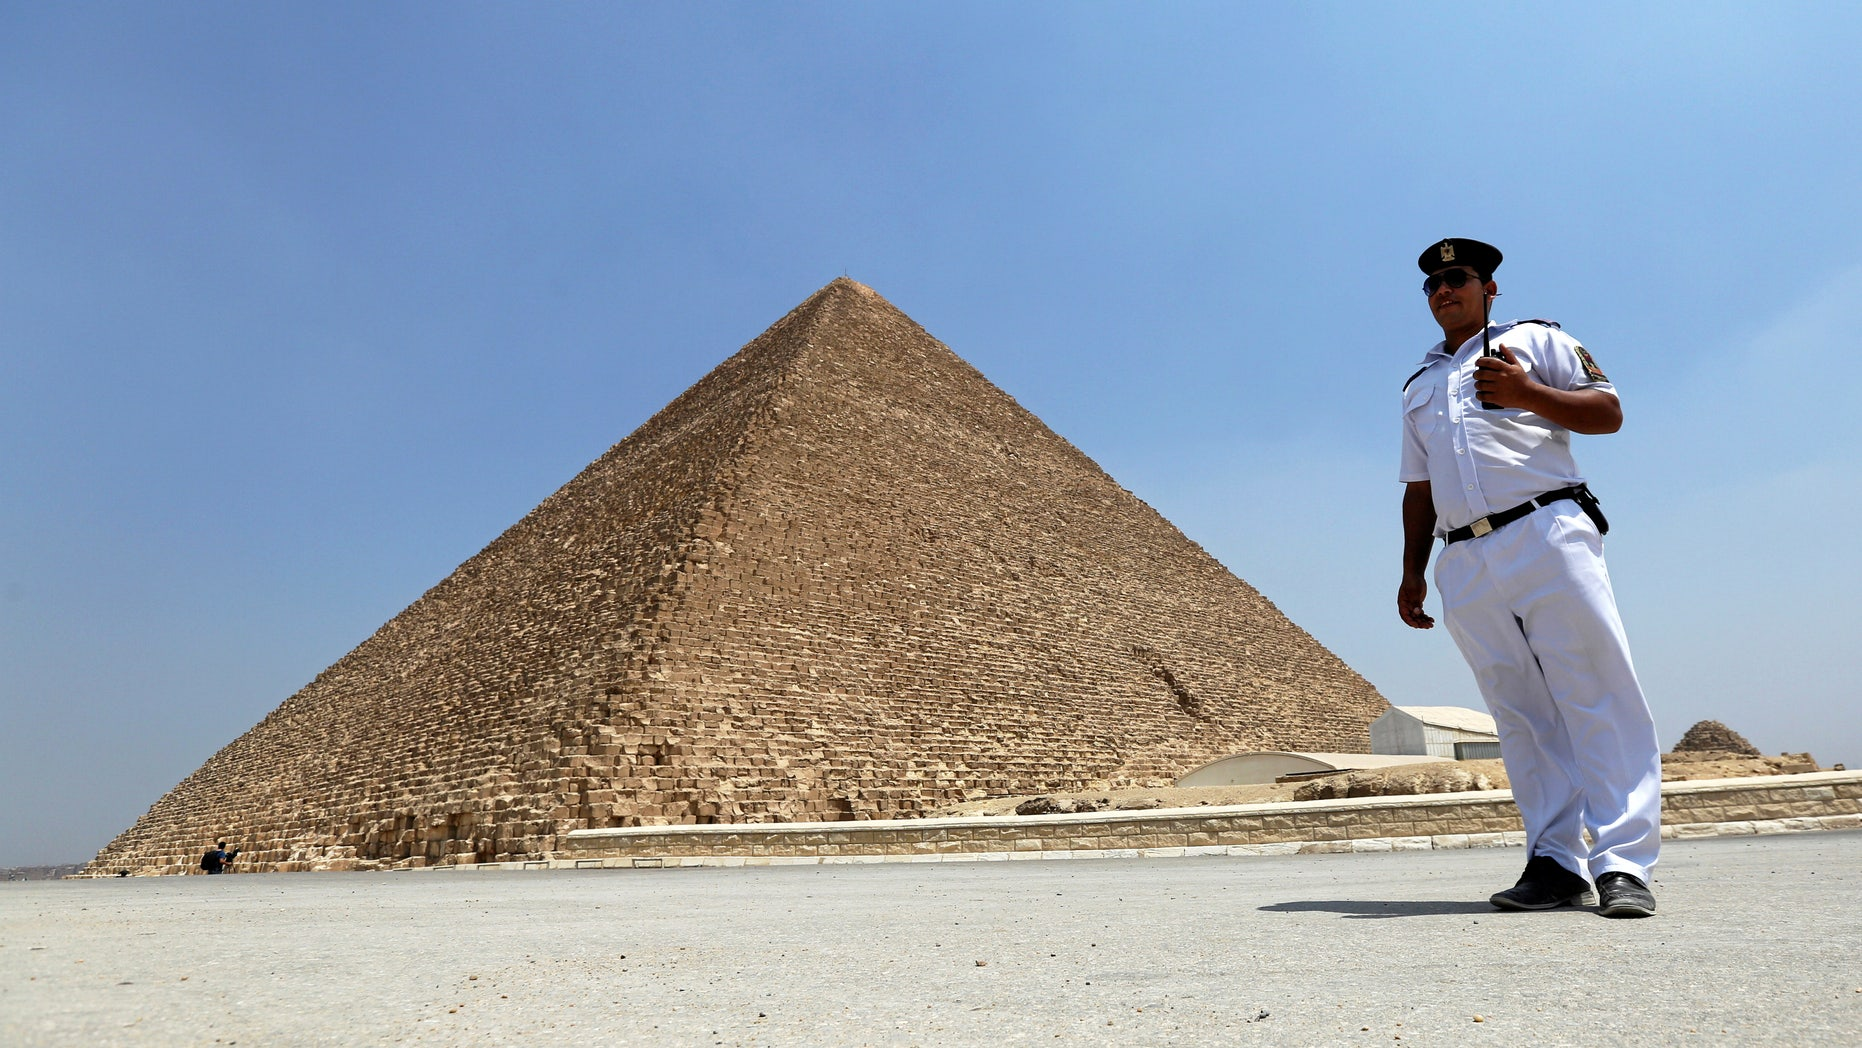 A policeman stands guard in front of the Pyramid of Khufu, the largest of the Great Pyramids of Giza, on the outskirts of Cairo, Egypt, August 31, 2016. (REUTERS/Mohamed Abd El Ghany)